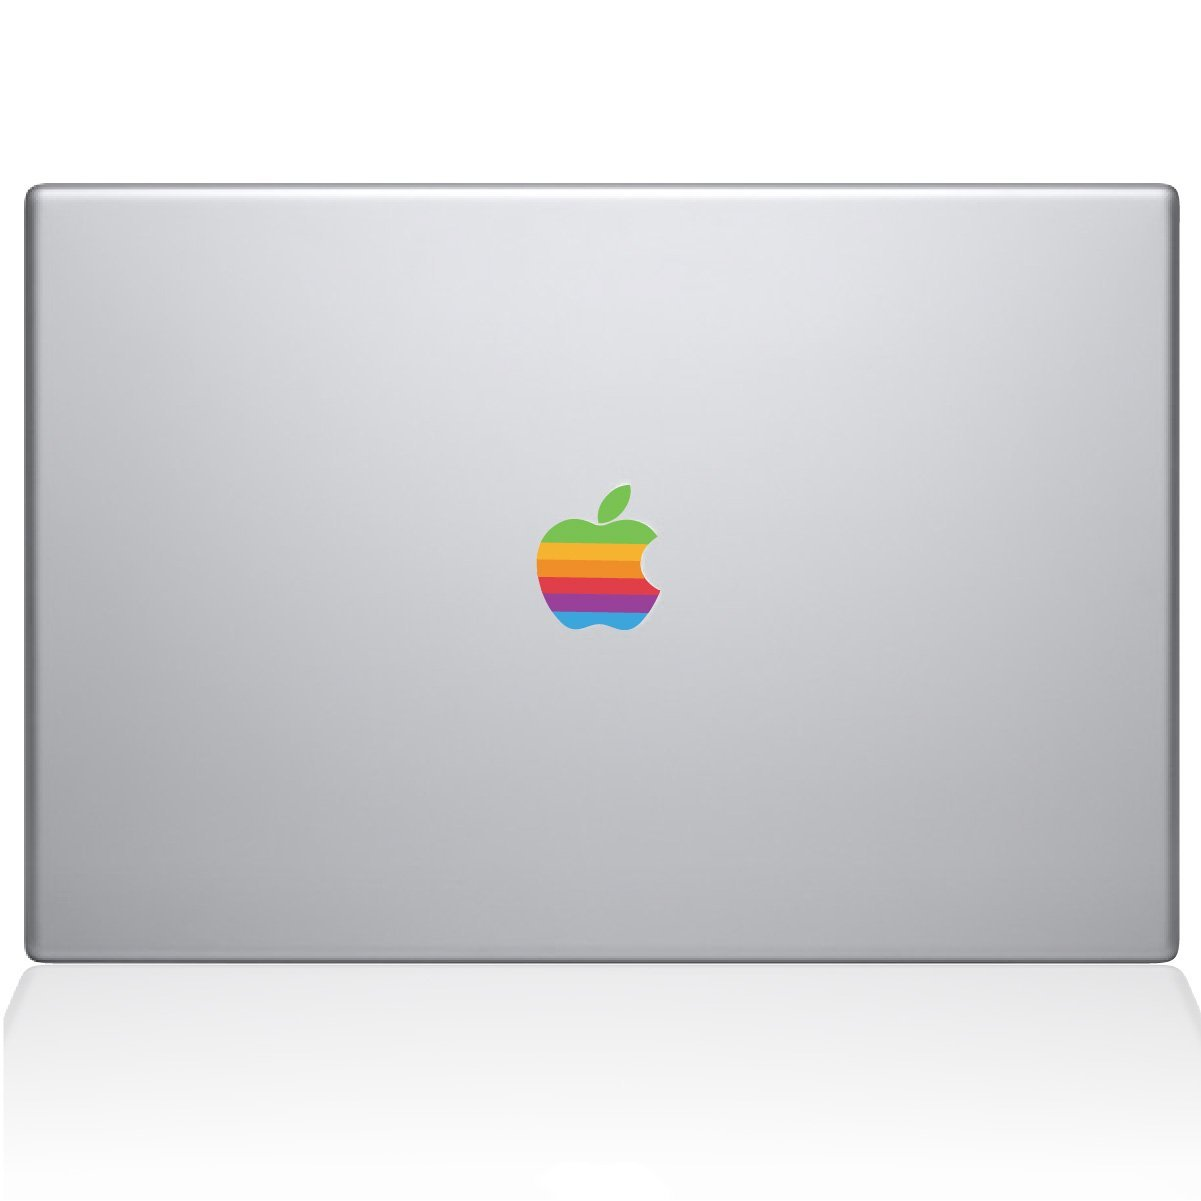 Cheap Type Apple Logo Find Type Apple Logo Deals On Line At Alibaba